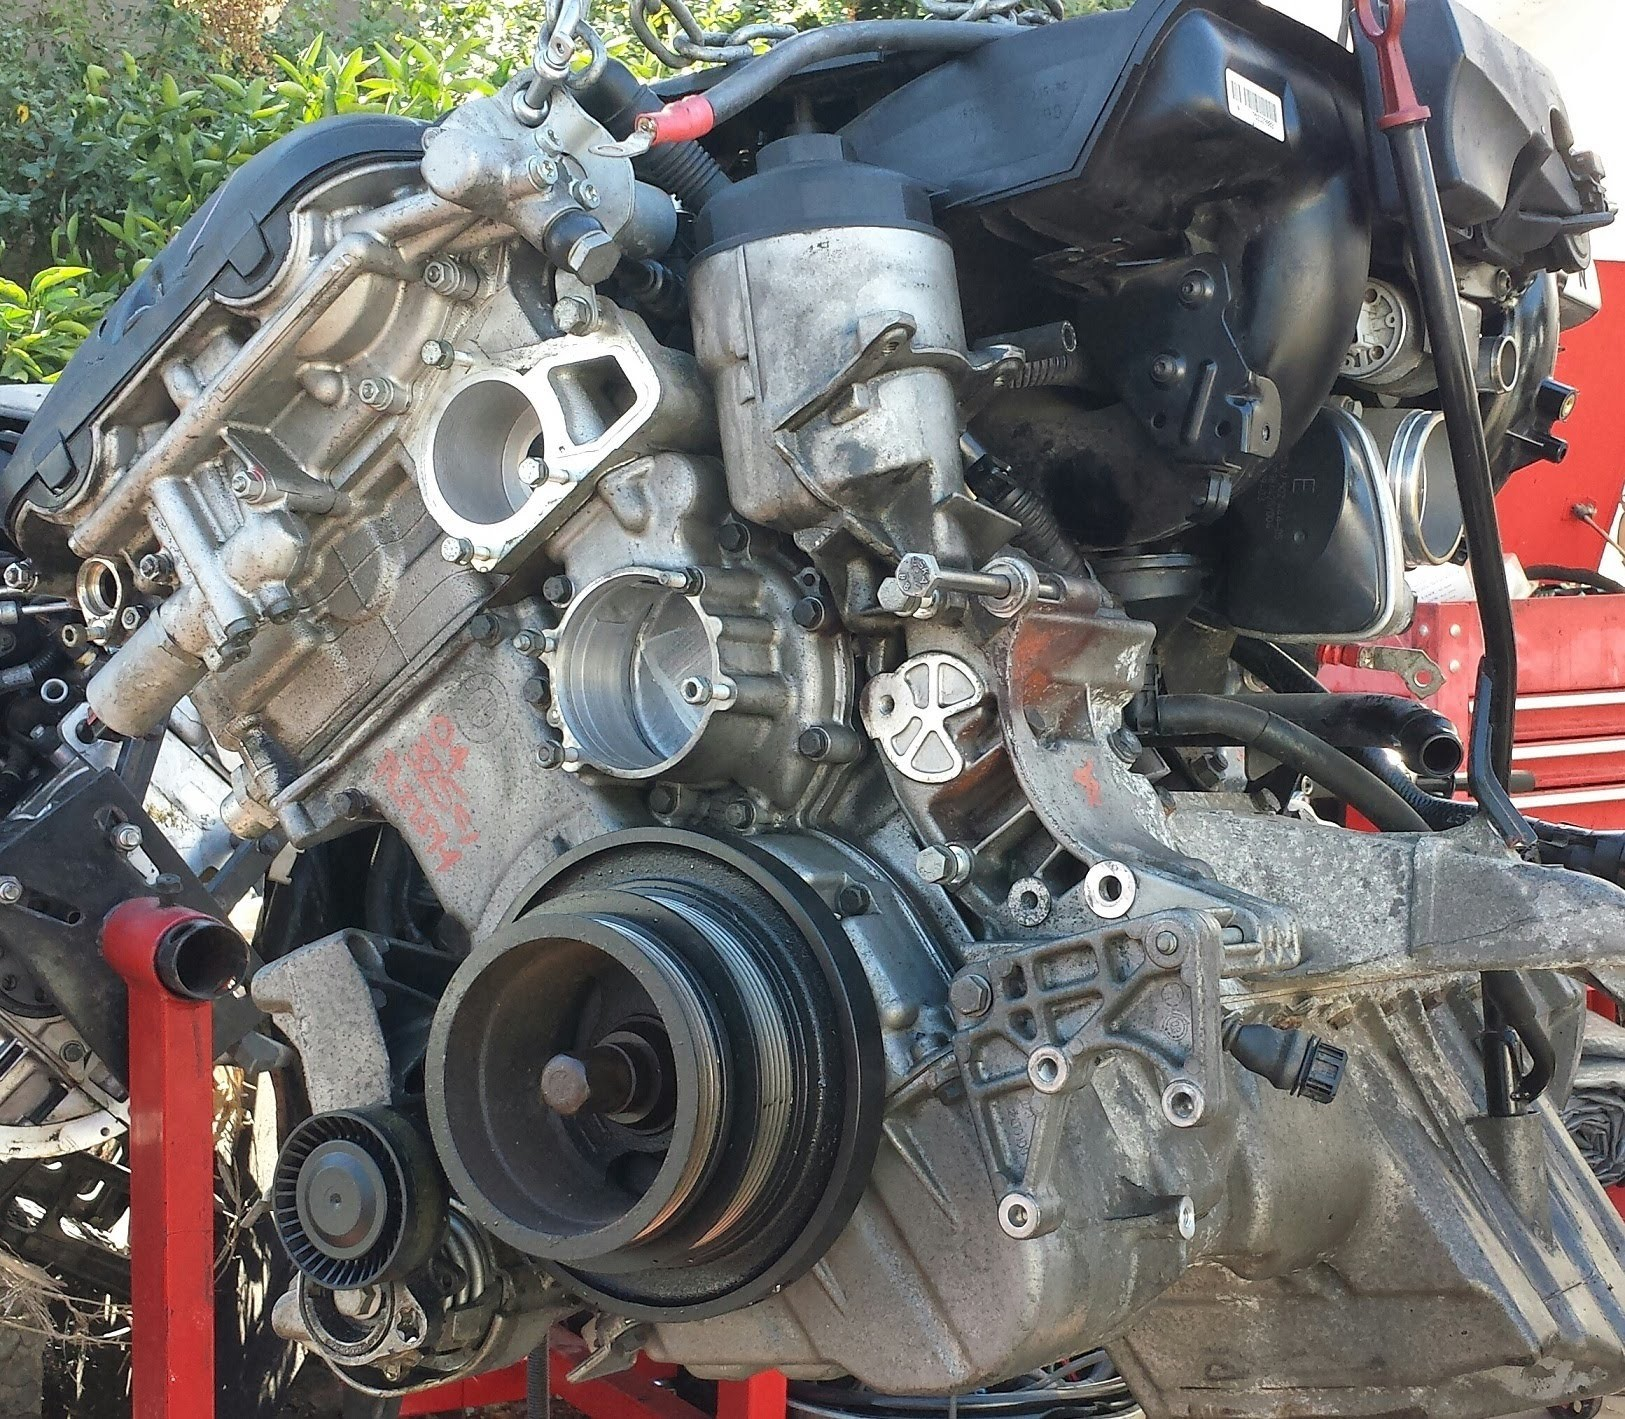 Bmw 528i Engine Diagram Under The Hood A 5 Series 04 Thru 10 M54b30 Sensors And Parts Of